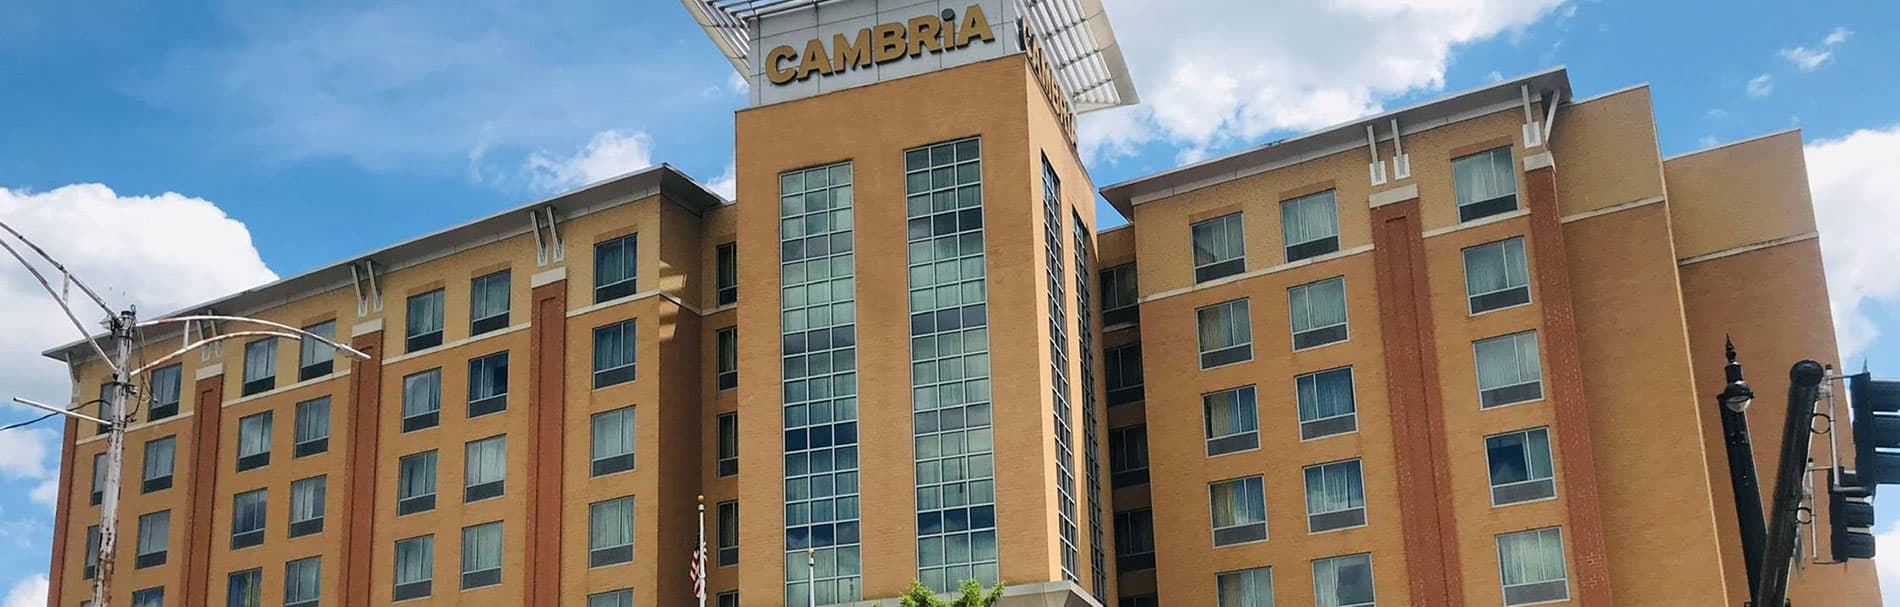 Location of Cambria Hotel Pittsburgh - Downtown, Pennsylvania